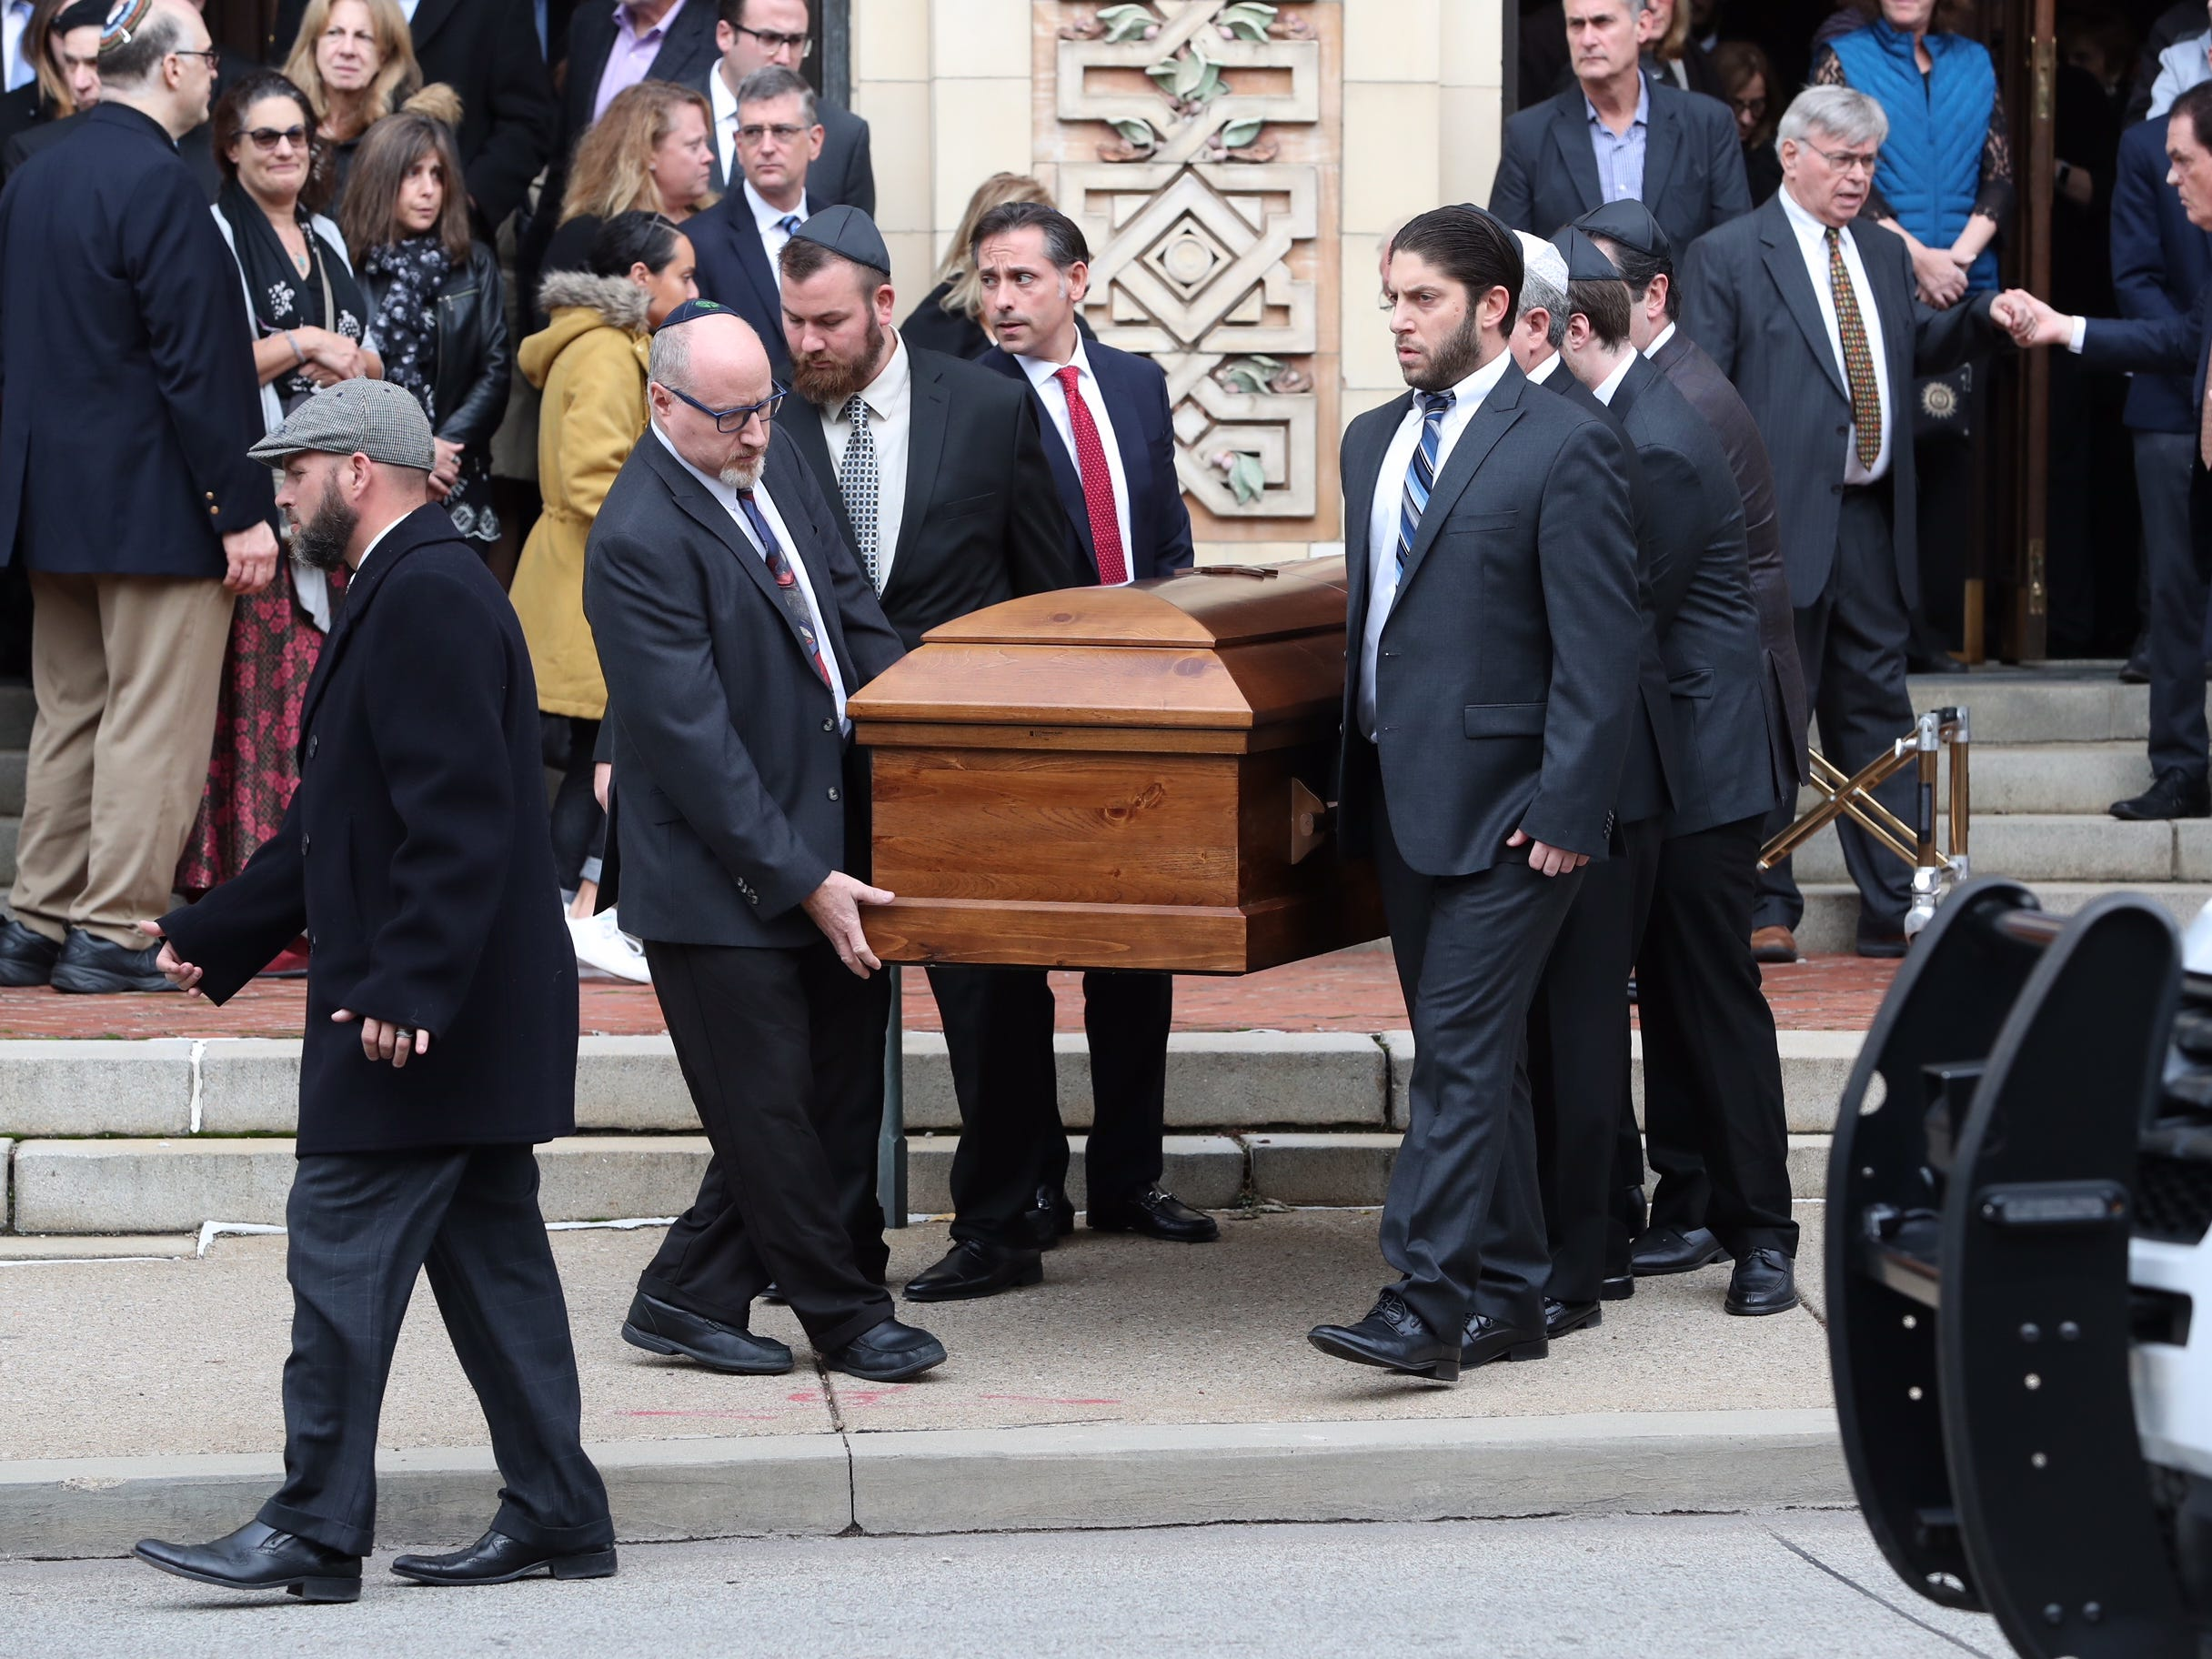 One of the caskets for brothers David and Cecil Rosenthal is carried out of the synagogue at the conclusion of funeral services at the Rodef Shalom Congregation in Pittsburgh, Pa., Tuesday, Oct. 30, 2018.